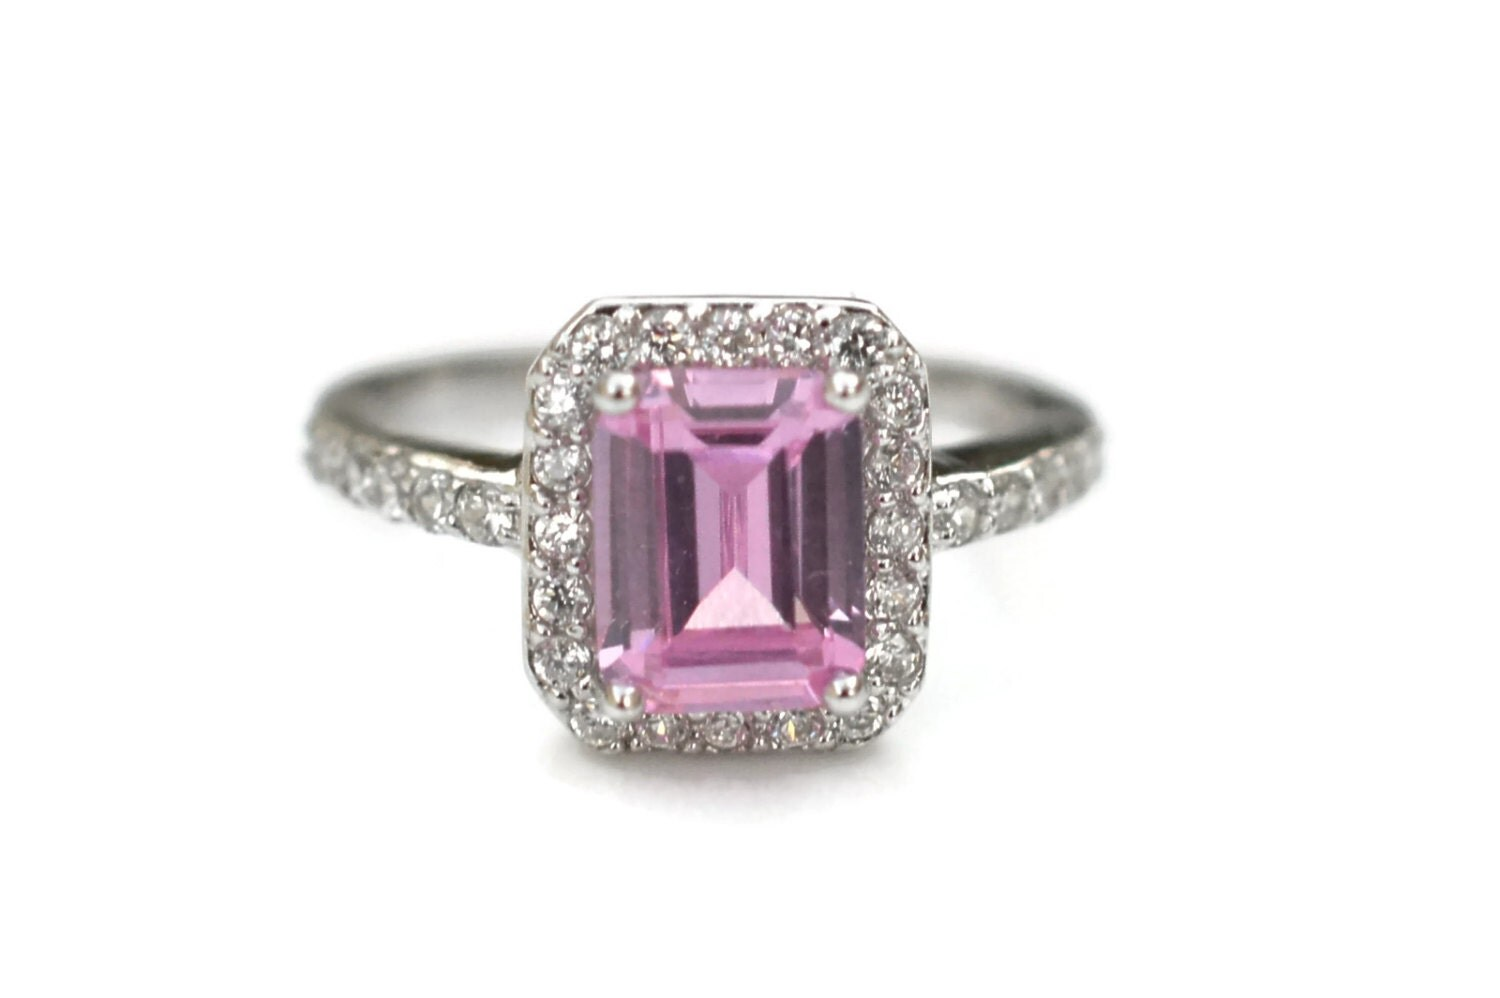 Size 6 Halo Pink Sterling Silver Cz Ring Emerald Cut Halo